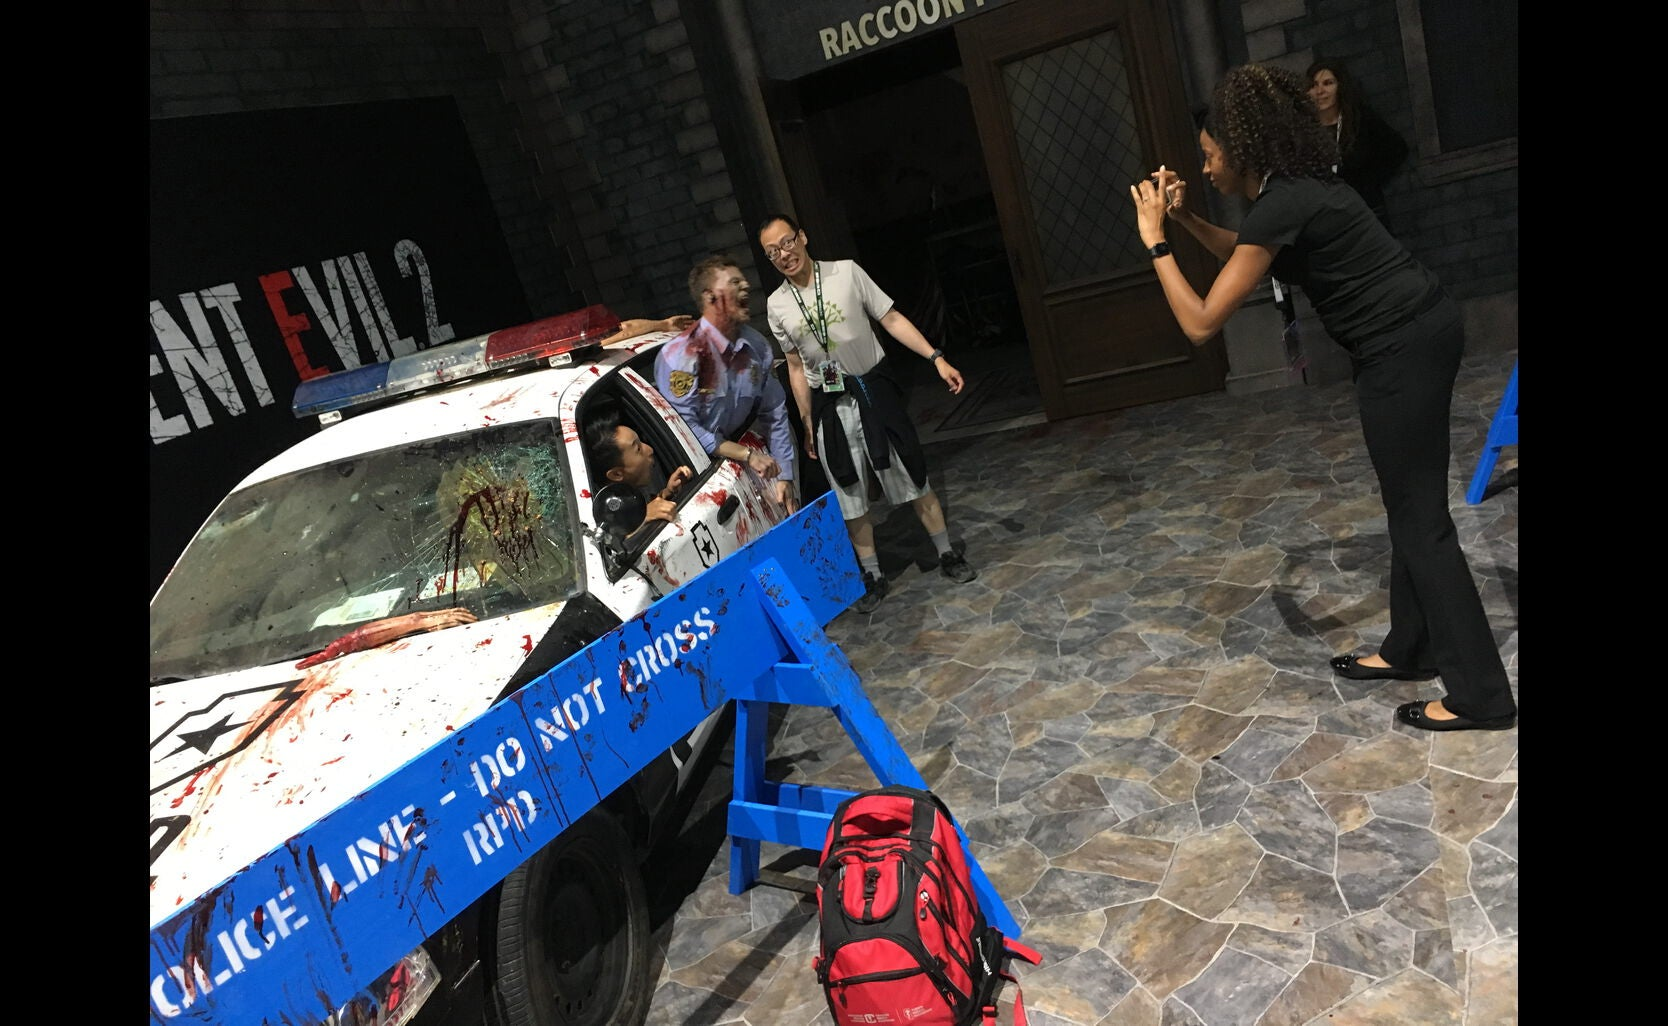 Resident Evil prop at Comic-Con 2018